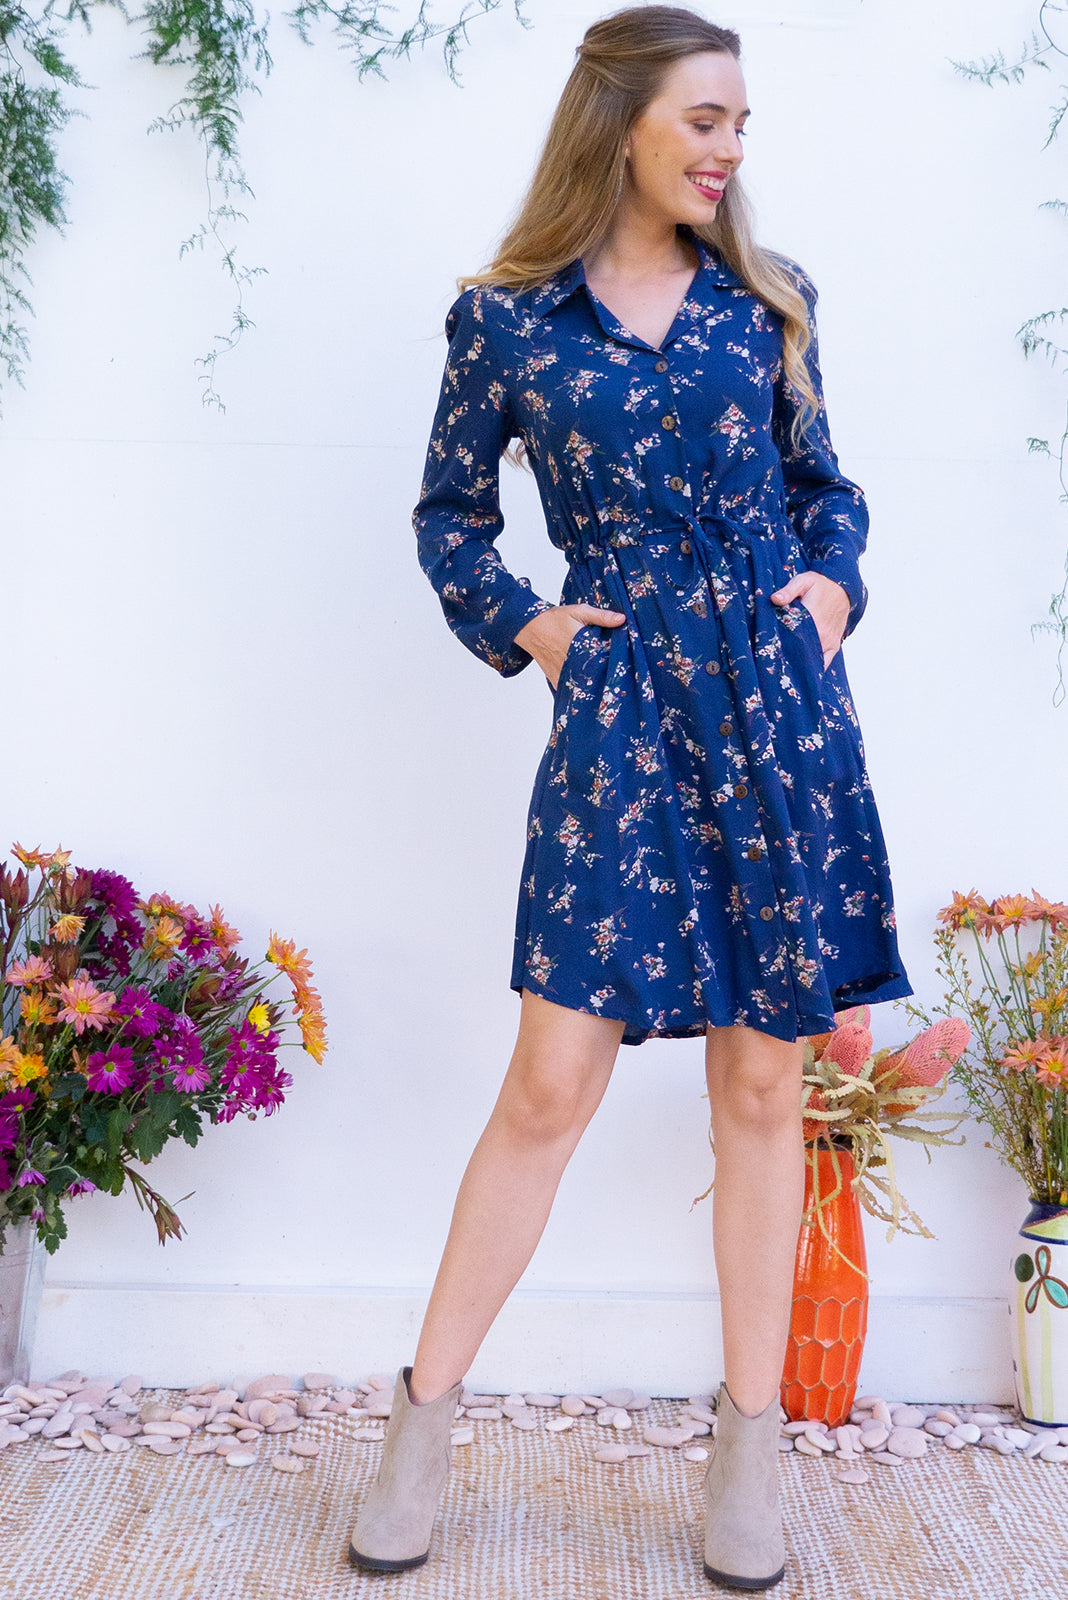 Alexandra Navy Skye Shirt Dress features a functional button front, long sleeve, drawstring waist and chic collar and it comes in a classic soft navy floral print on 100% rayon